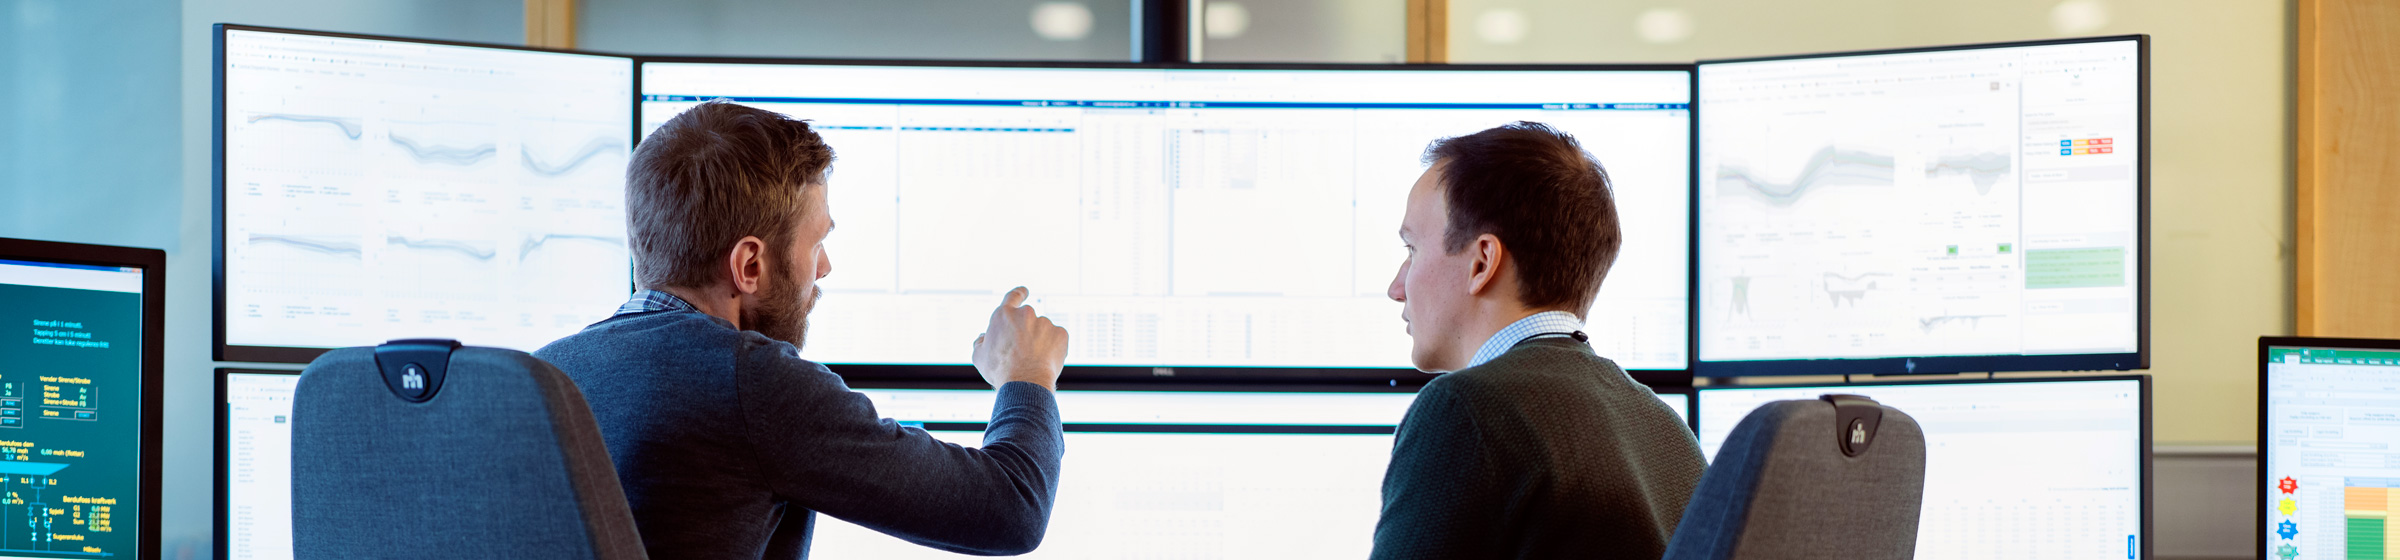 Two men discussing at computer screens